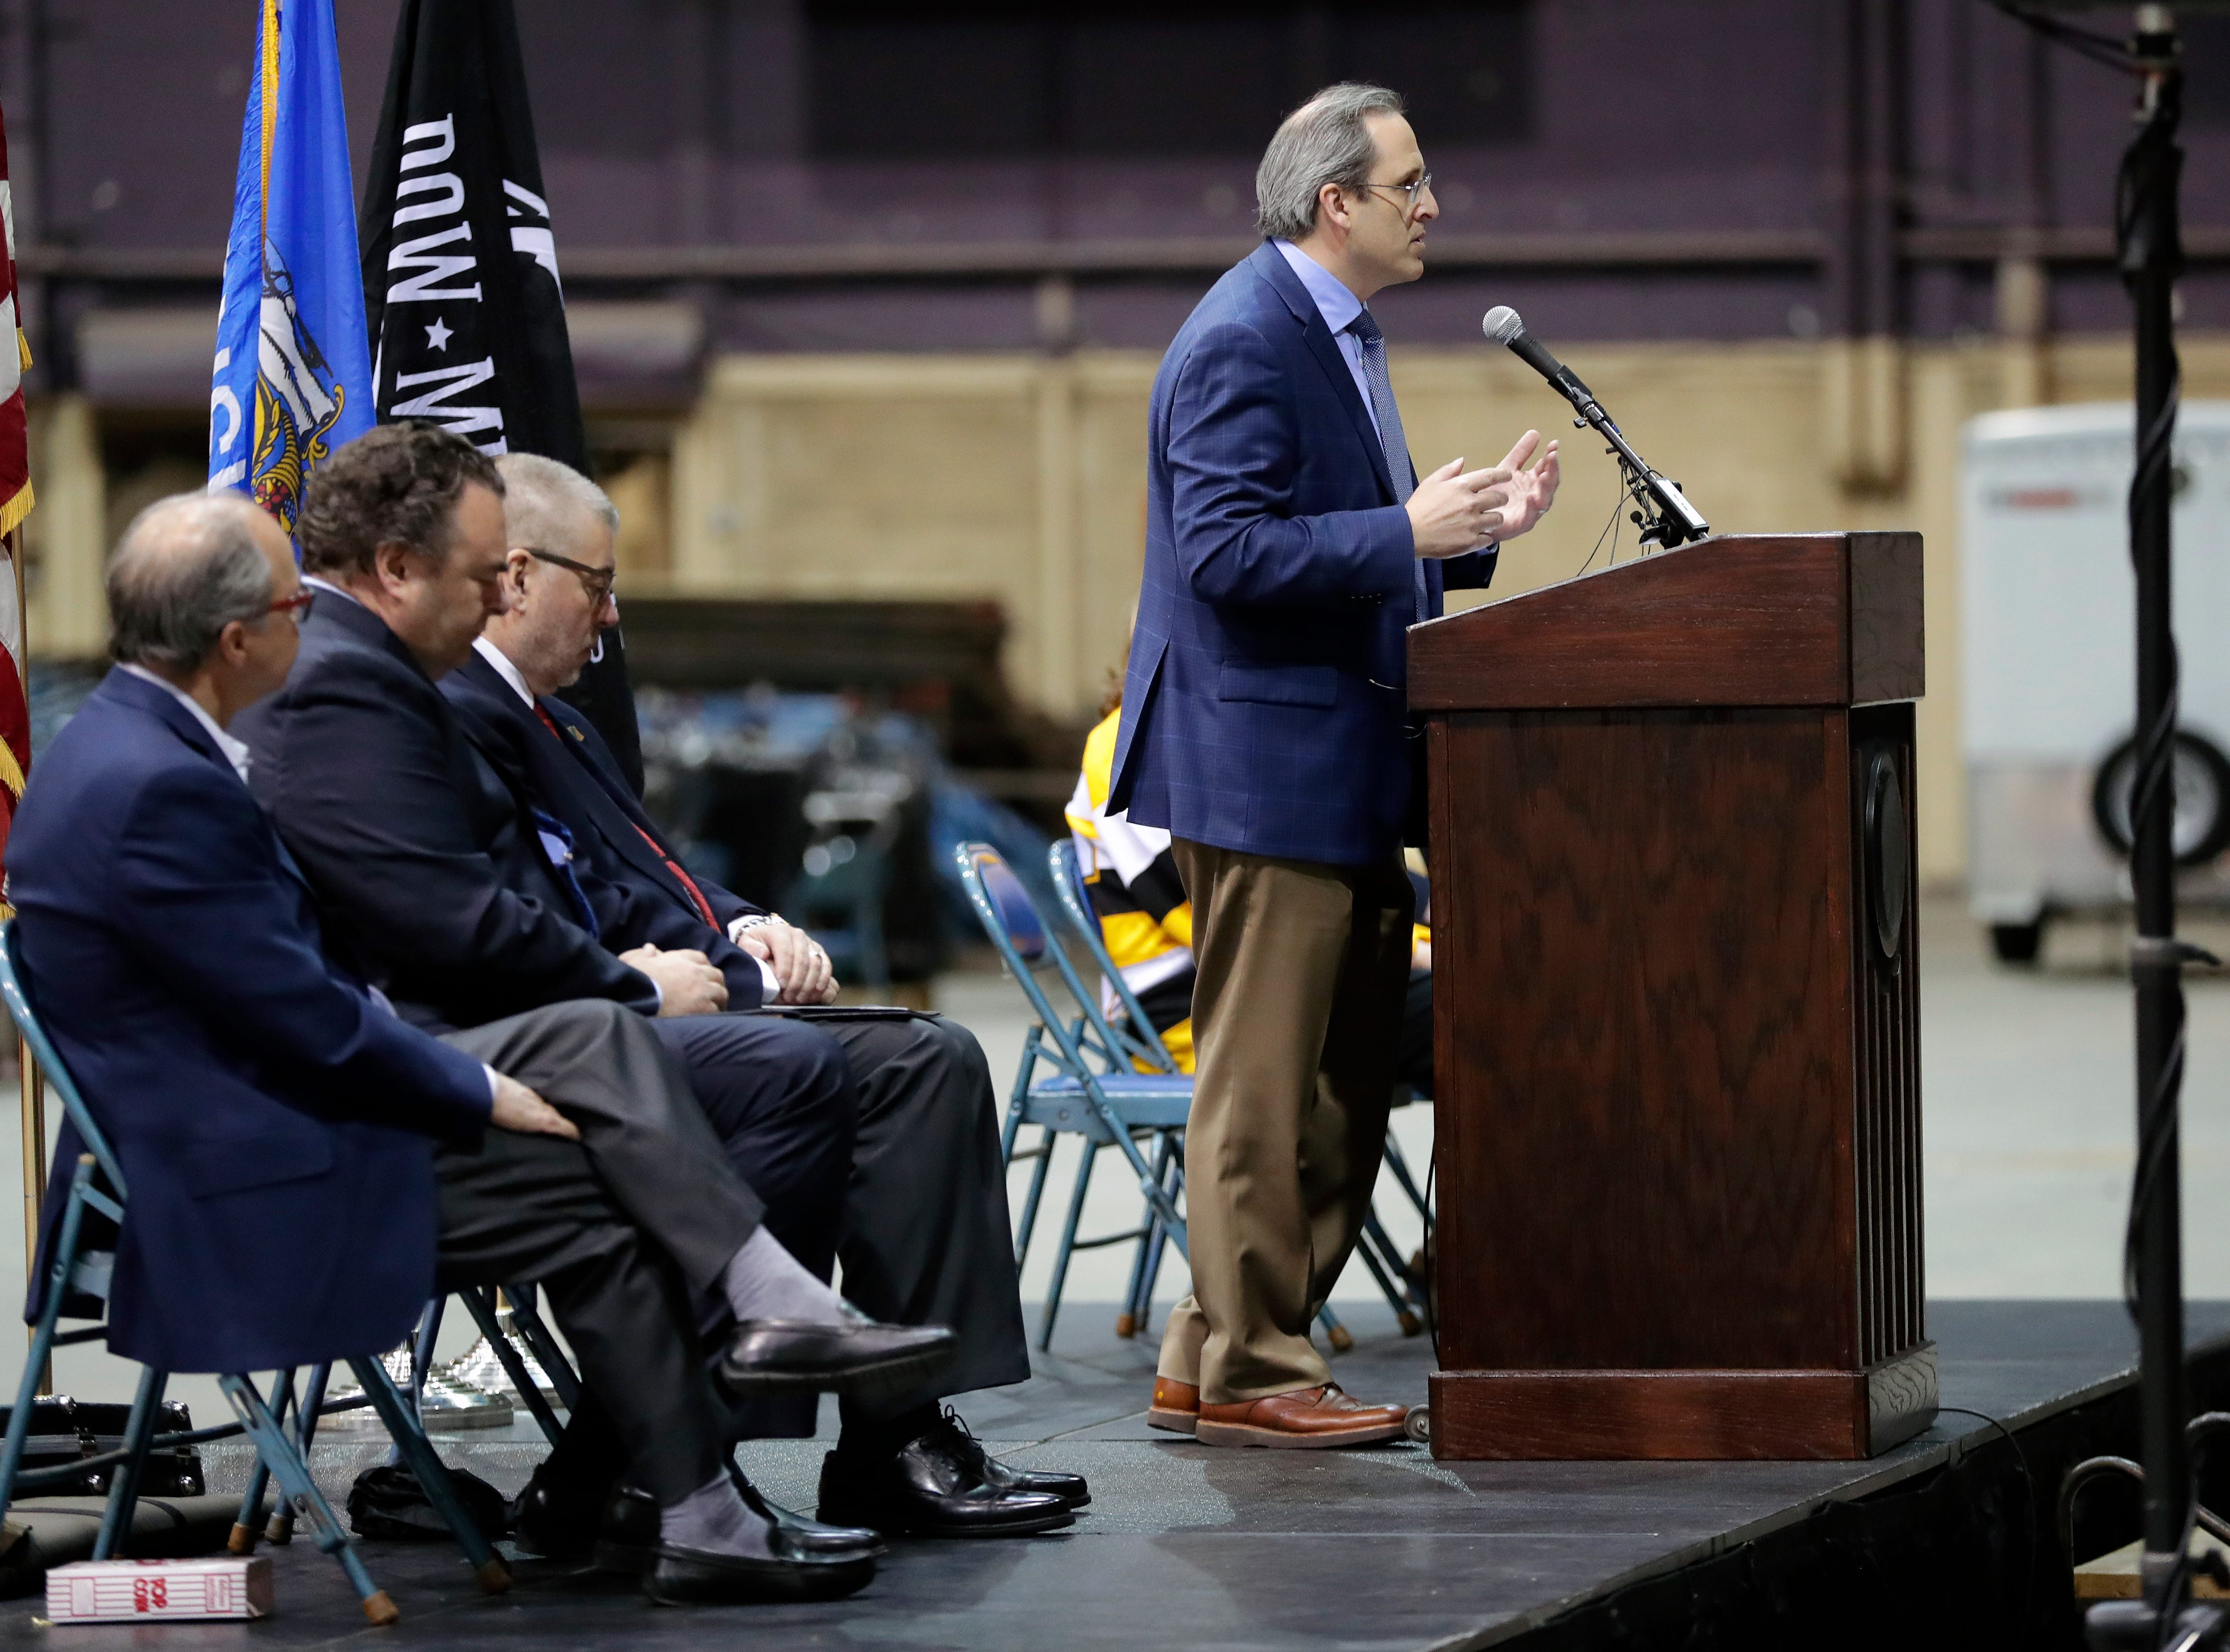 Brown County Executive Troy Streckenbach speaks during a farewell ceremony held April 29, 2019 inside the Brown County Veterans Memorial Arena before demolition of the building begins.